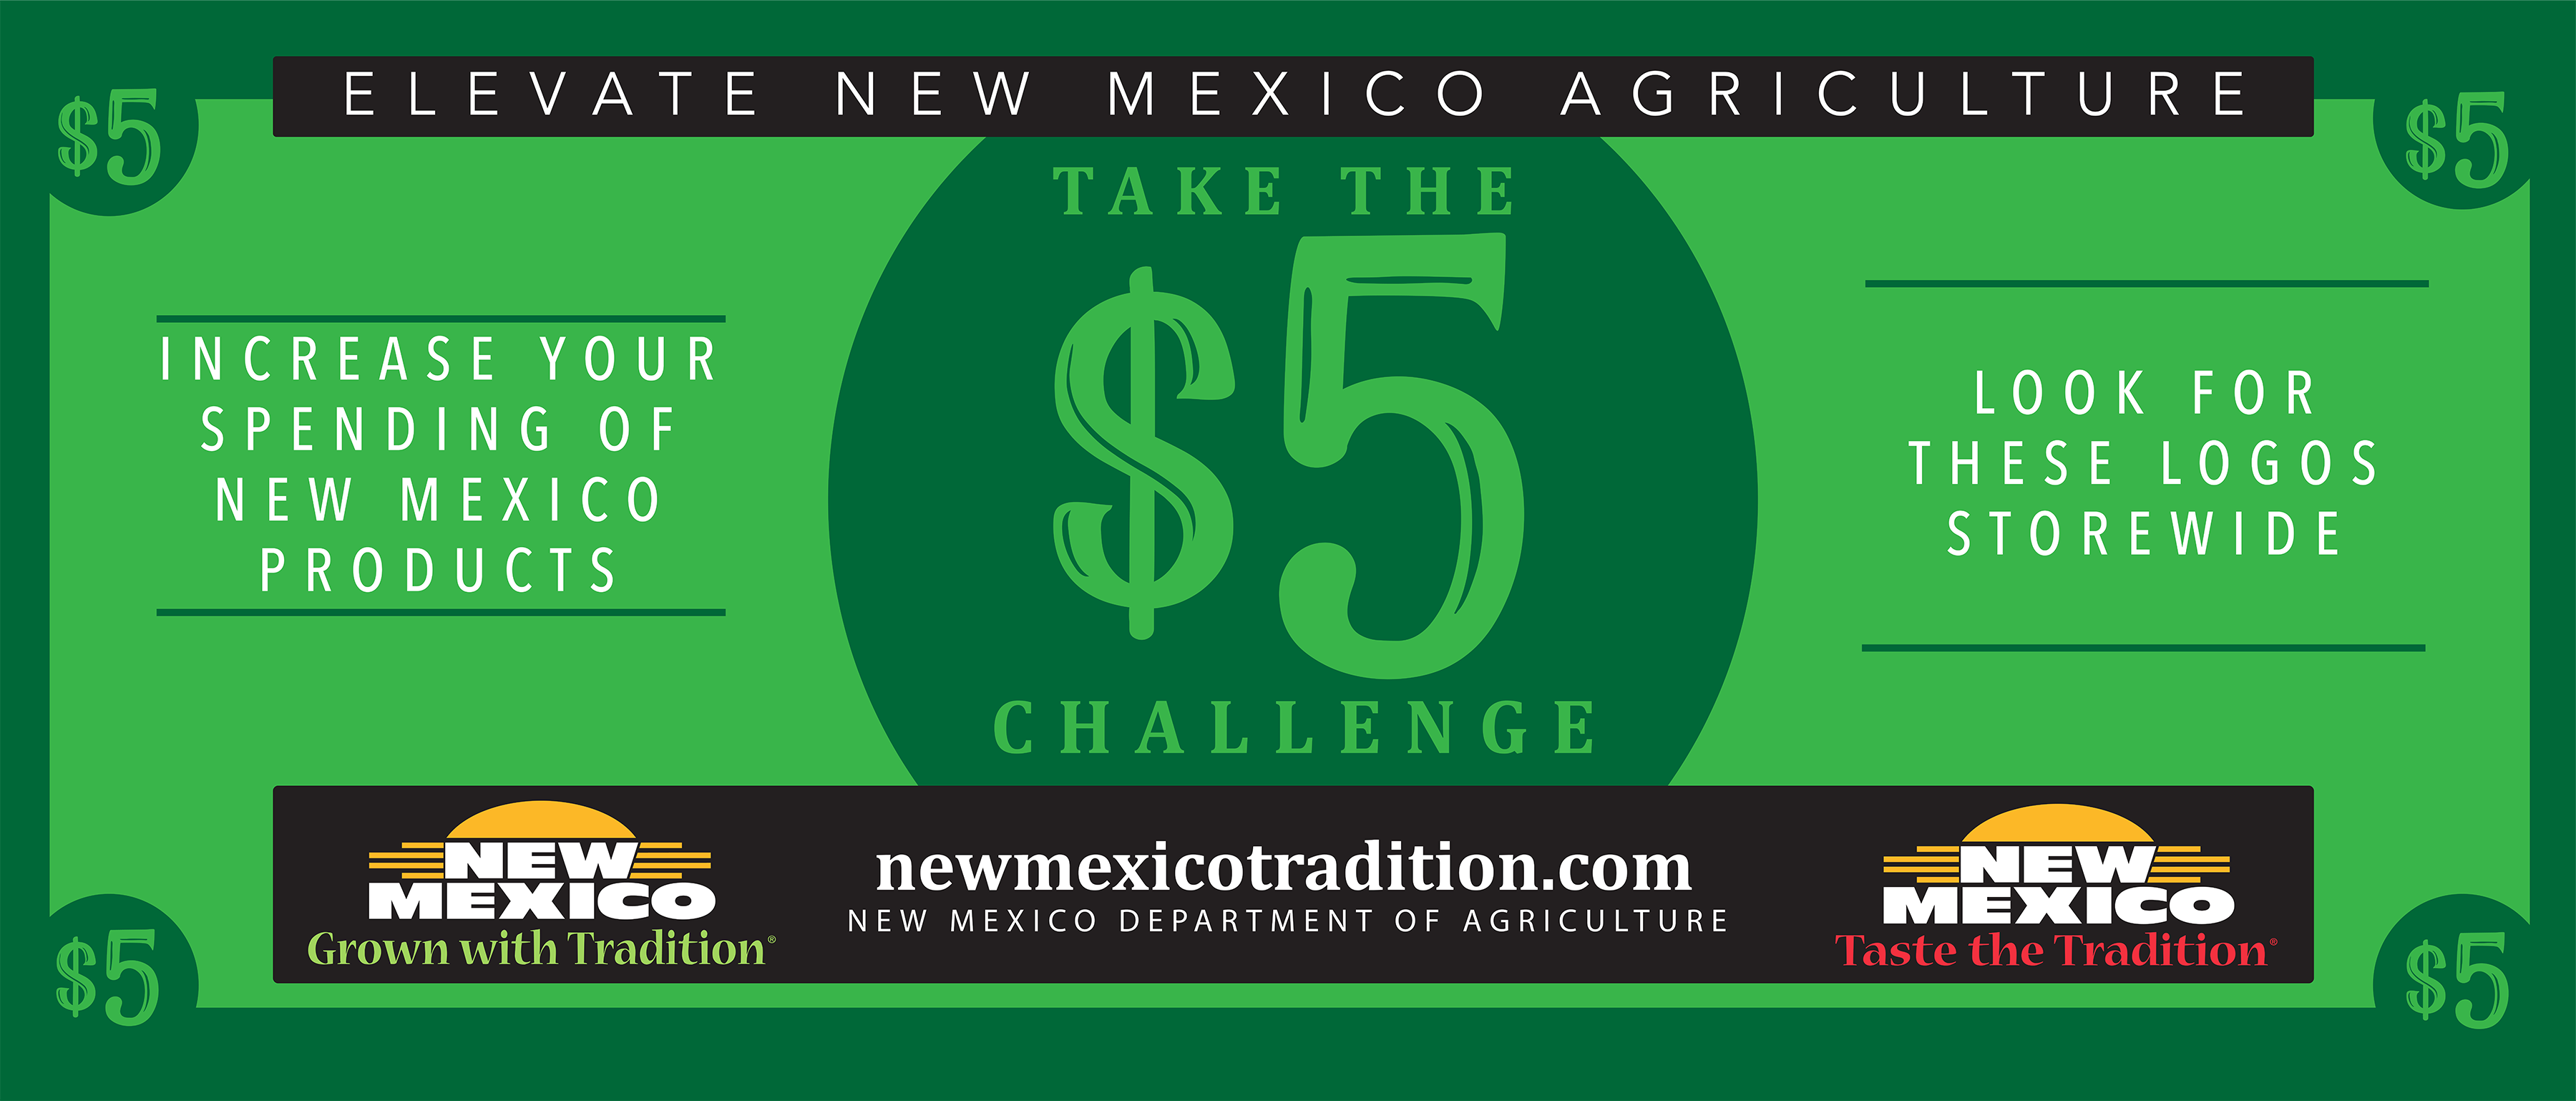 The $5 challenge is a New Mexico Taste the Tradition campaign aimed to increase purchase of New Mexico products